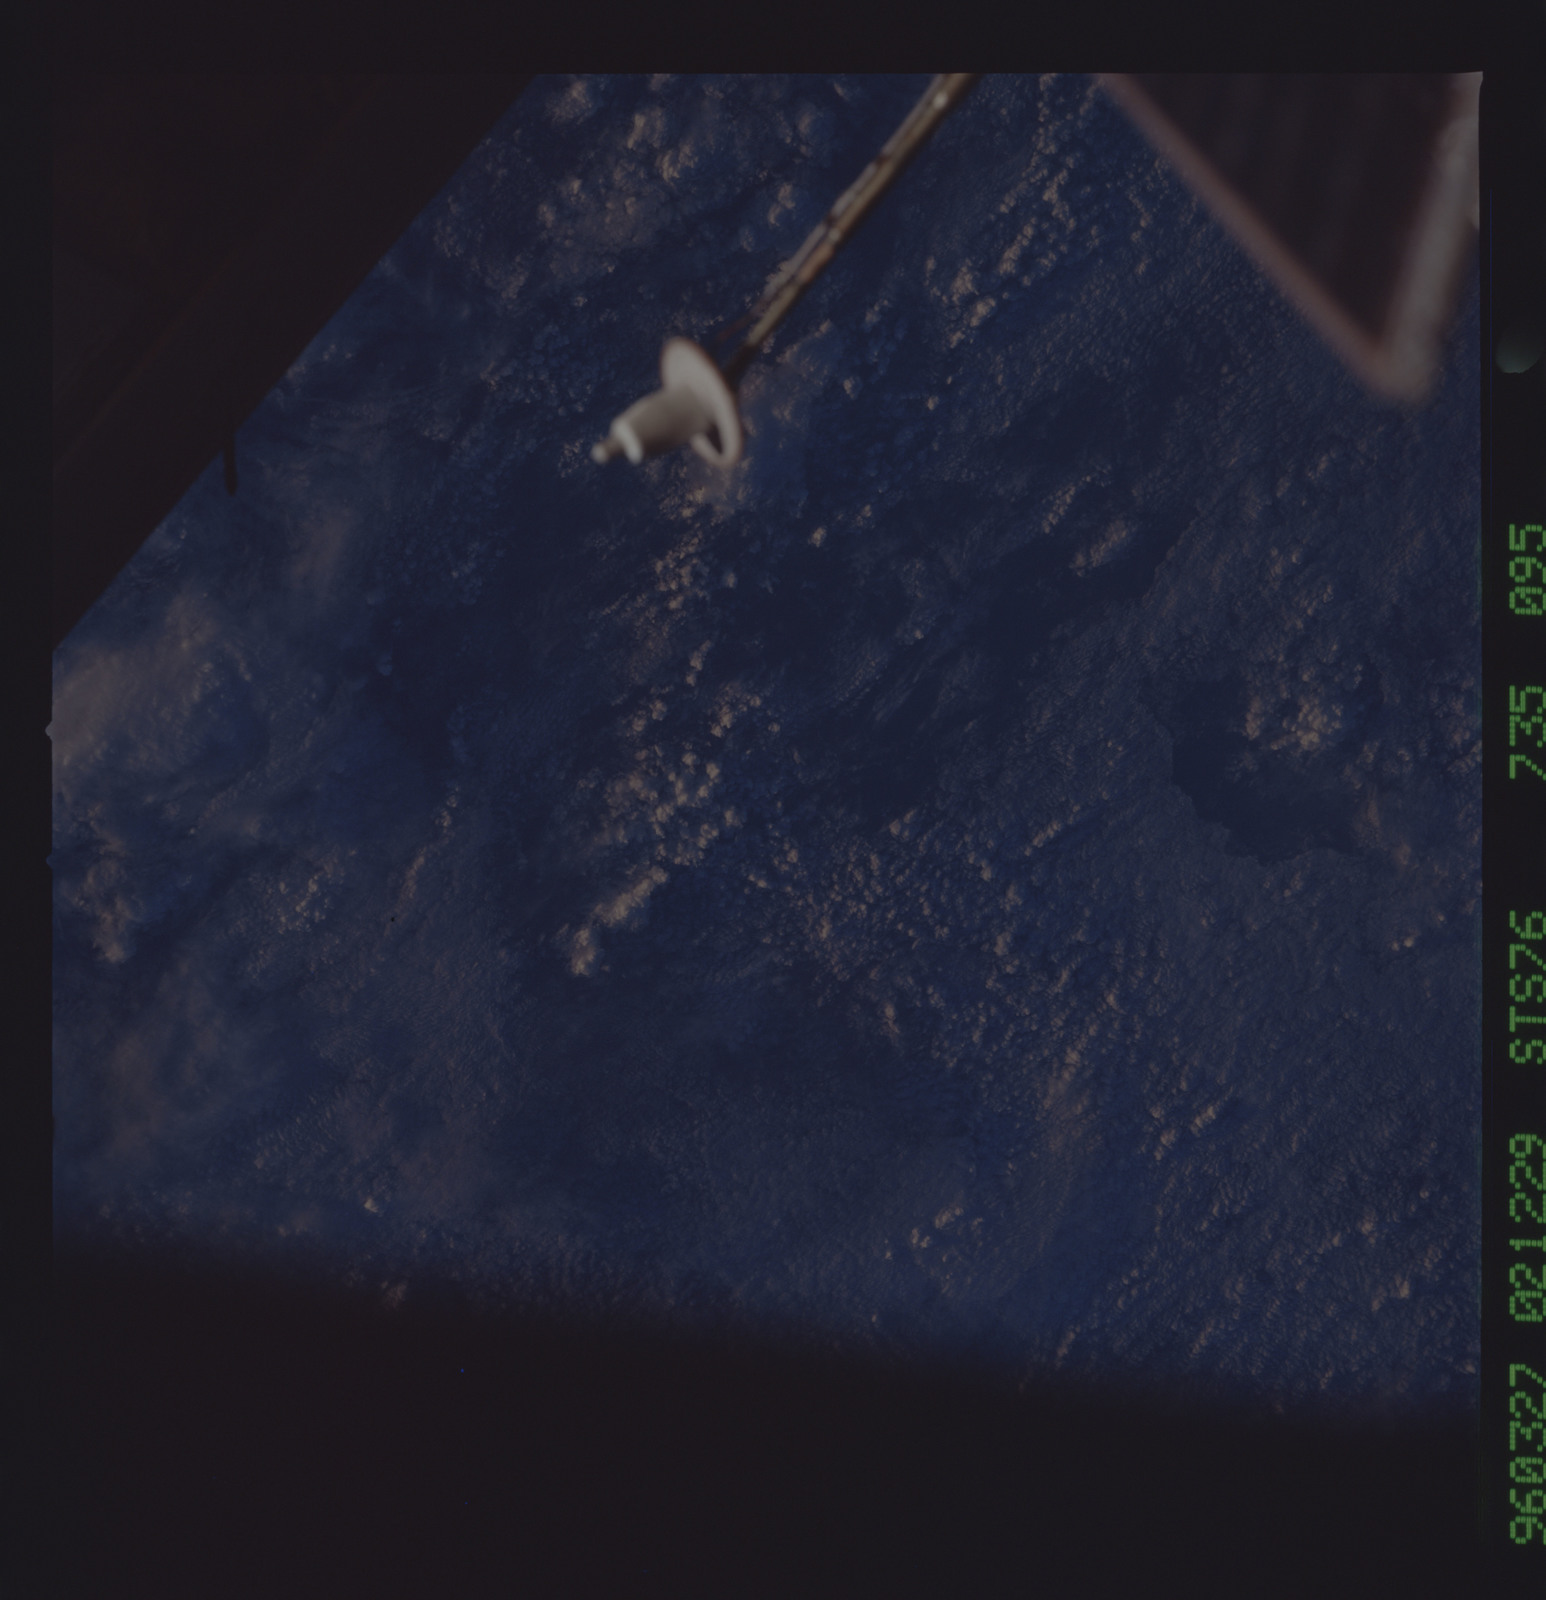 STS076-735-095 - STS-076 - Earth observations taken from shuttle orbiter Atlantis during STS-76 mission